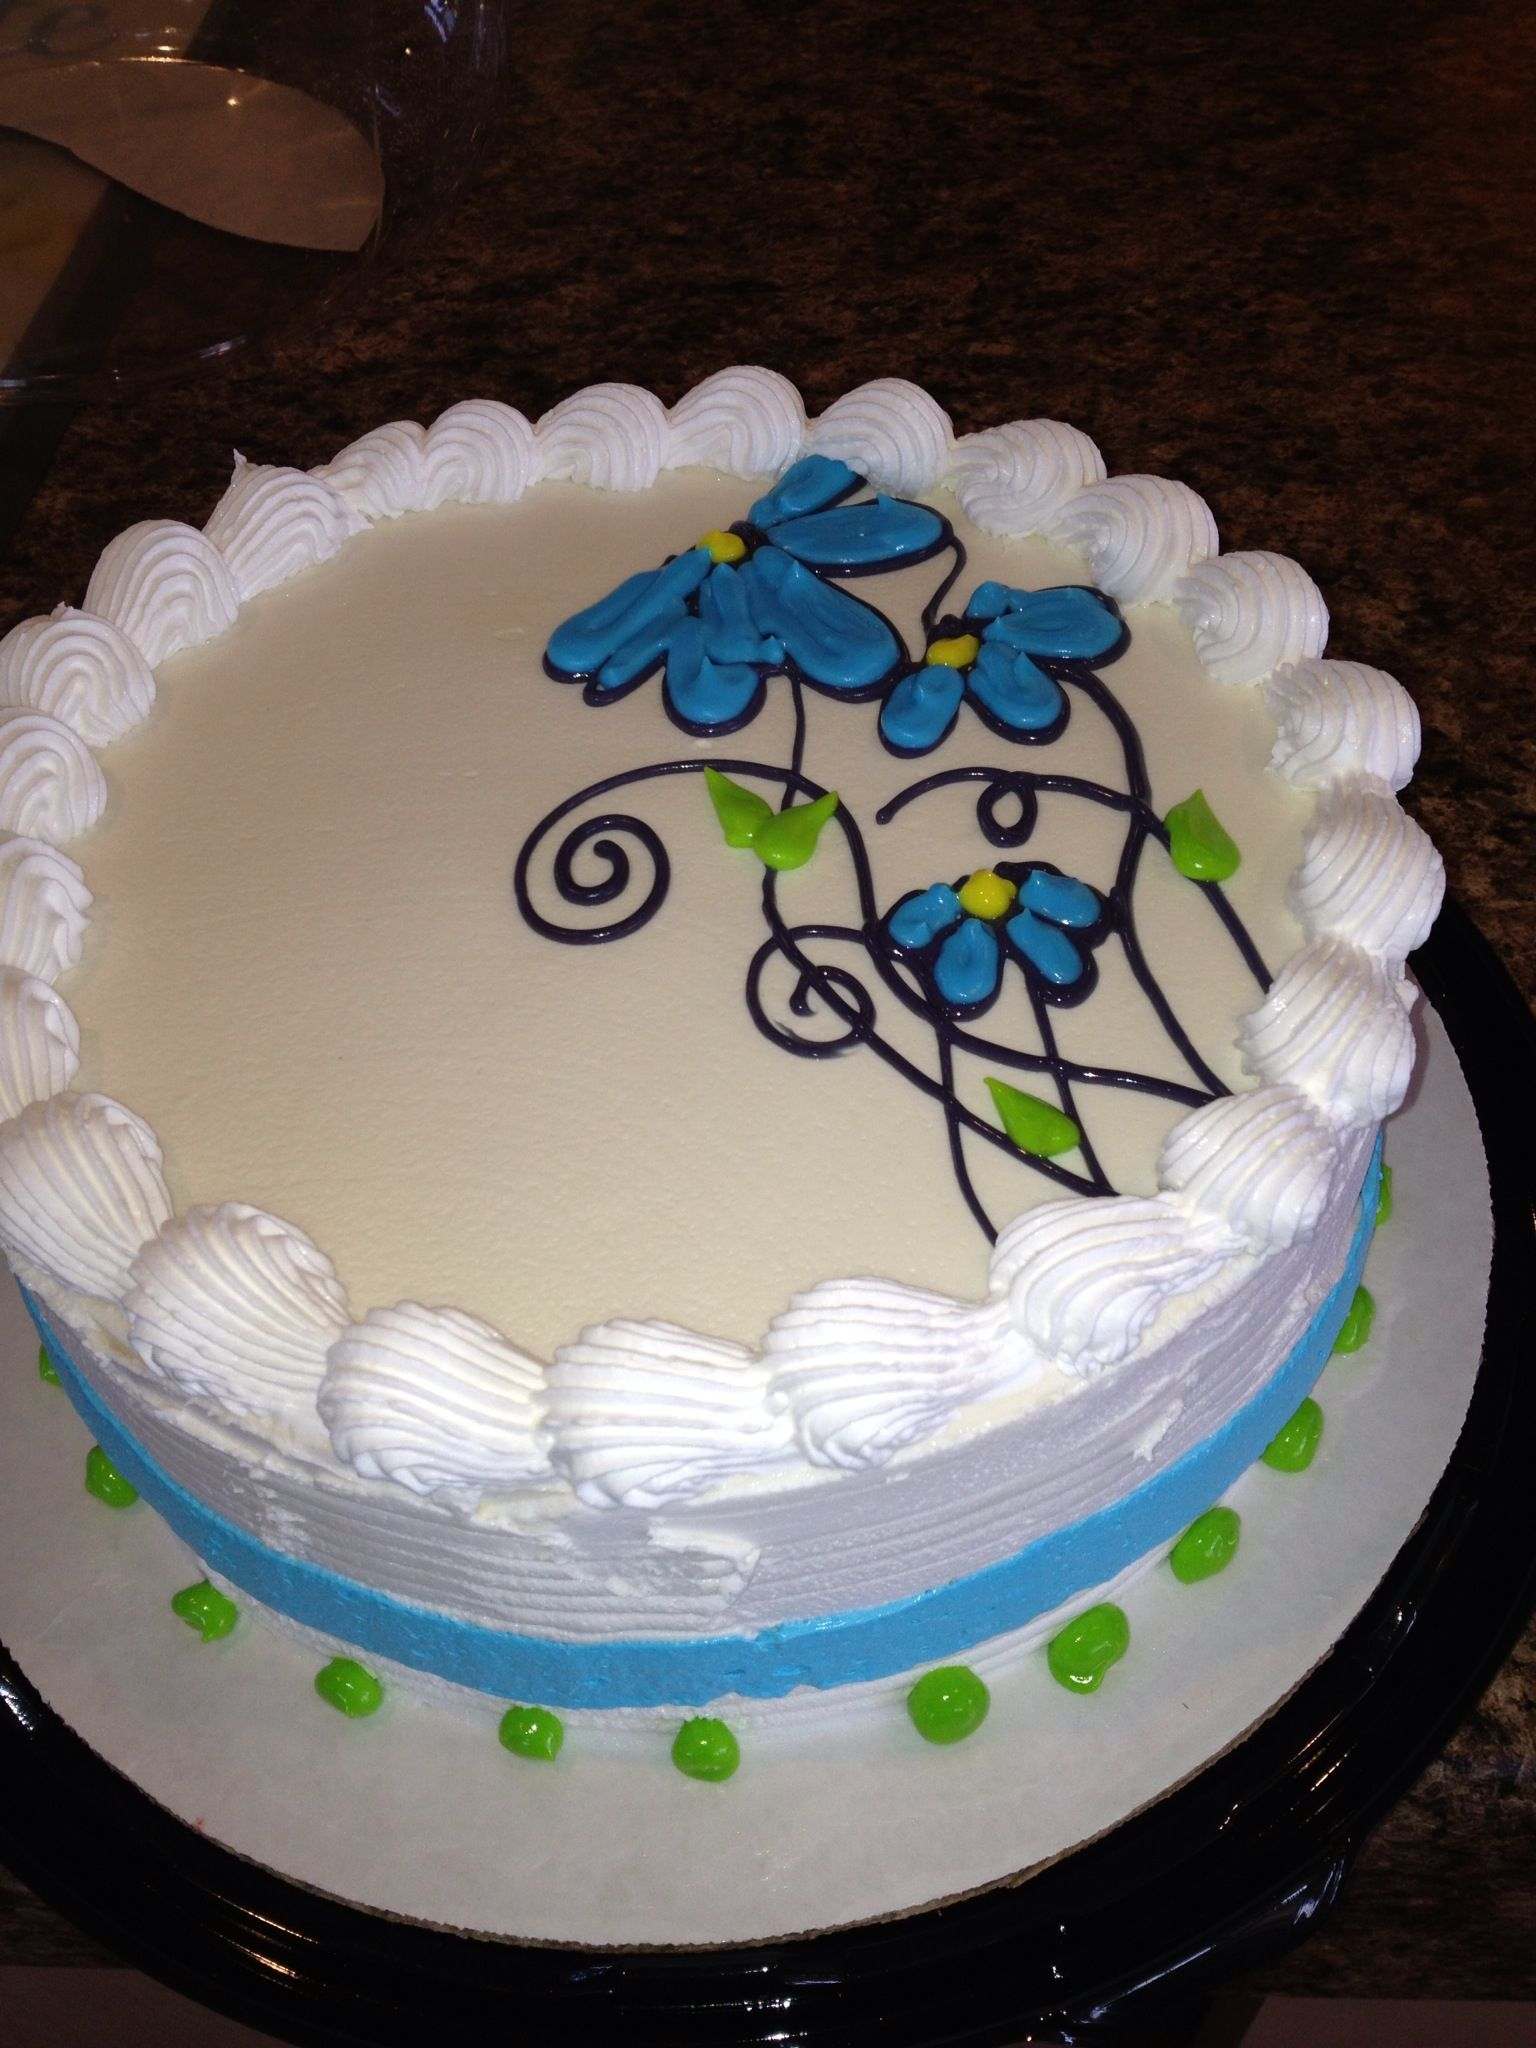 Dq cakes...Dairy Queen. Cute simple freehand flowers ...